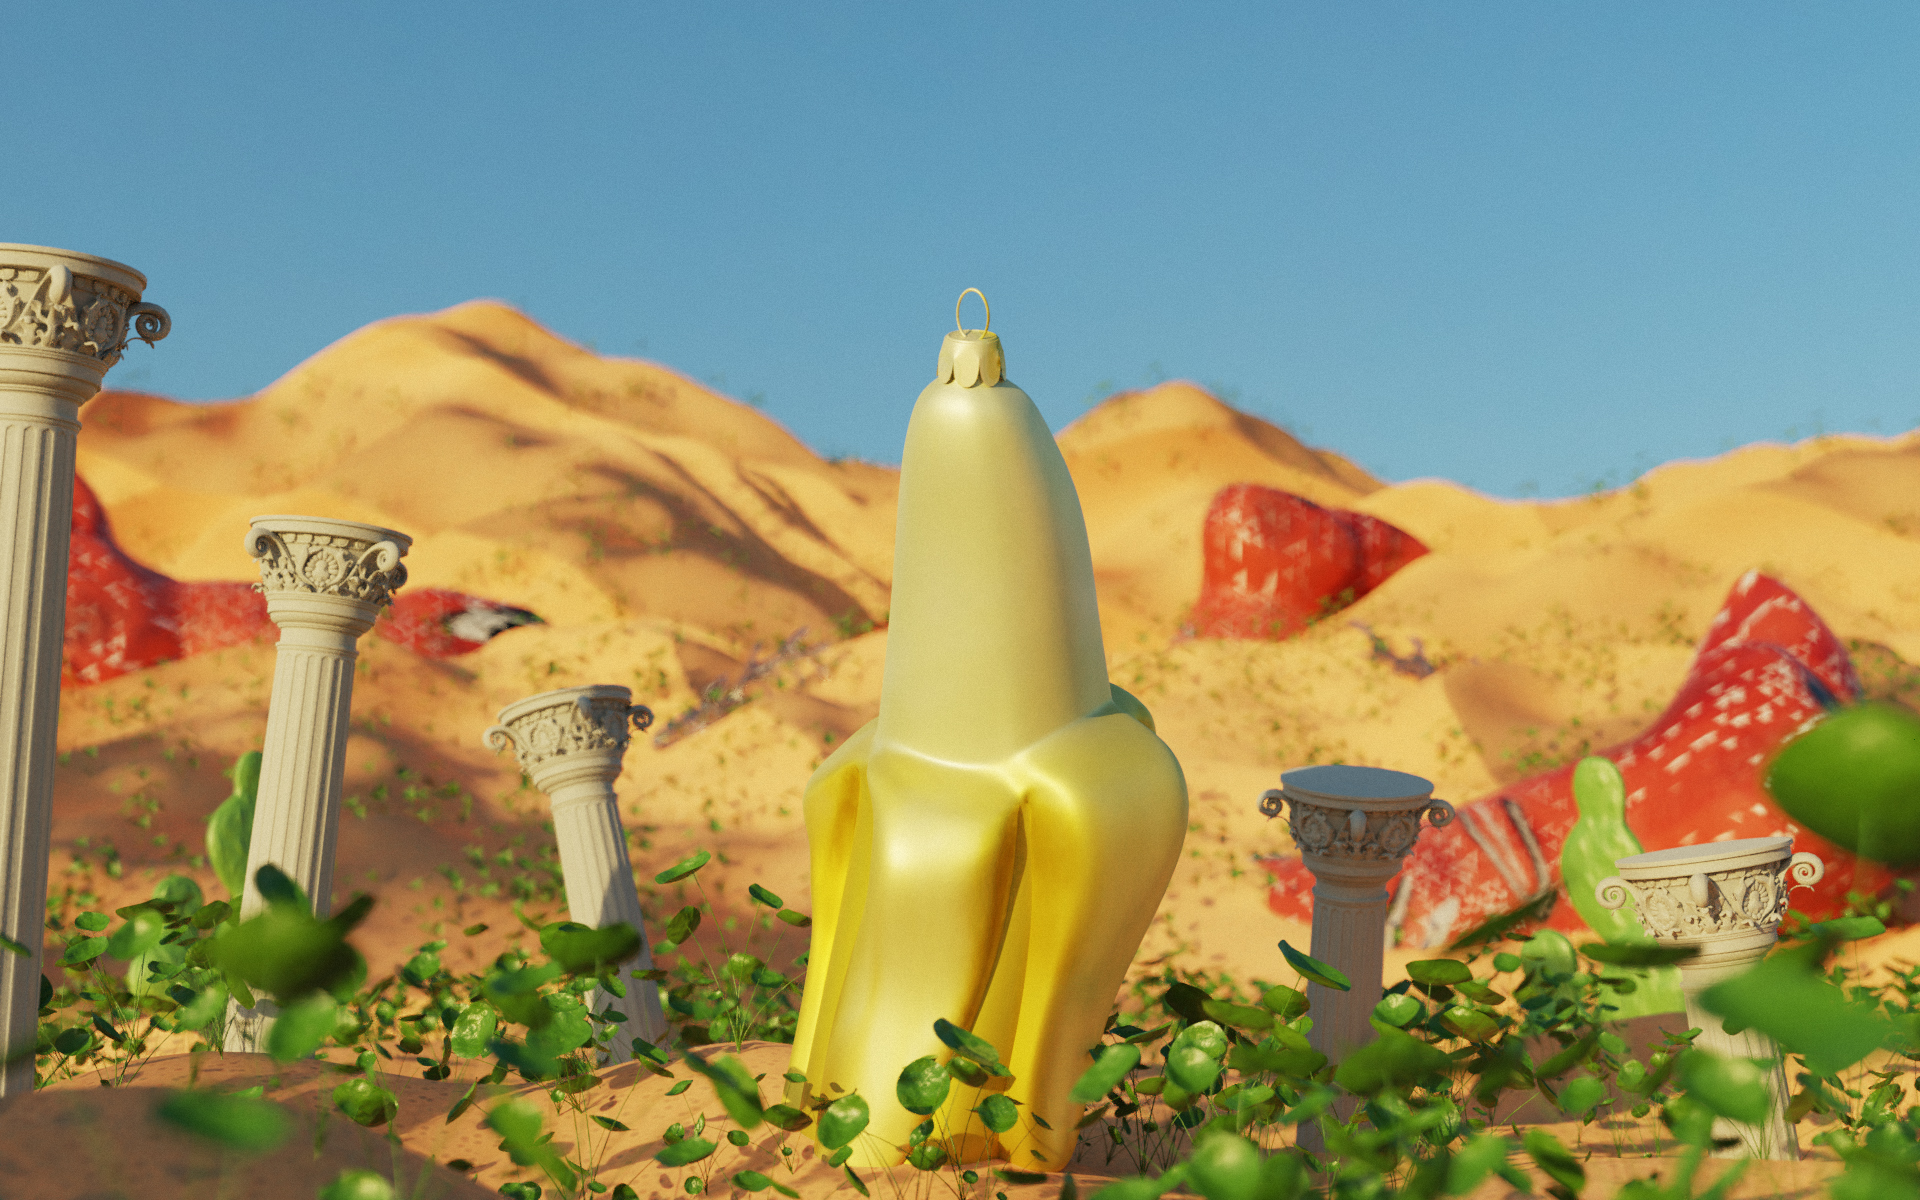 3D rendering centered on a stylized banana surrounded by roman styled columns, approximately the size of the banana, in desert setting. The bottoms of the columns and banana are surrounded by greenery. Mountains of sand and red structures fill the background and a blue sky covers the top third of the image.